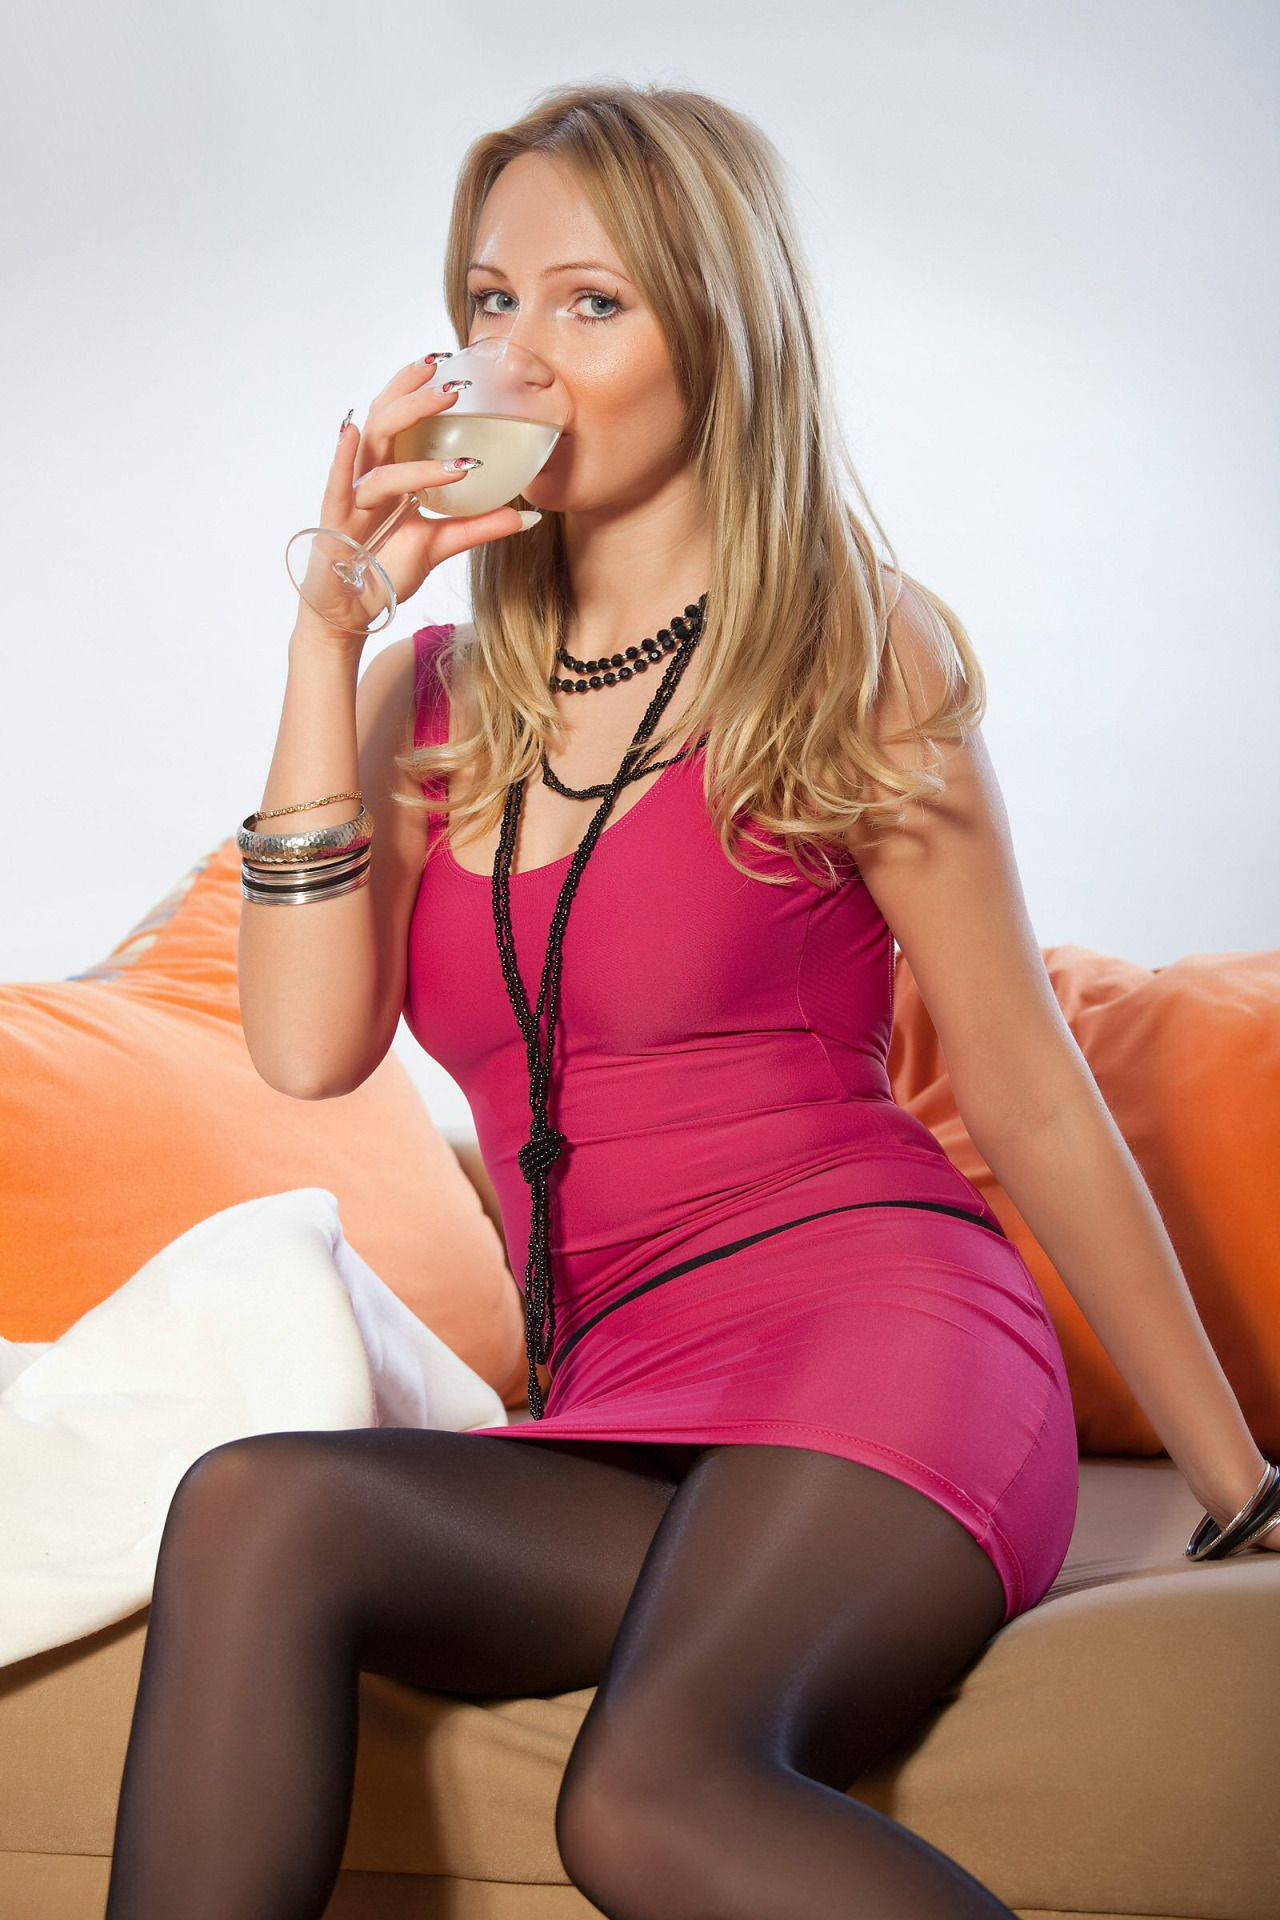 Drinking in pantyhose sexy